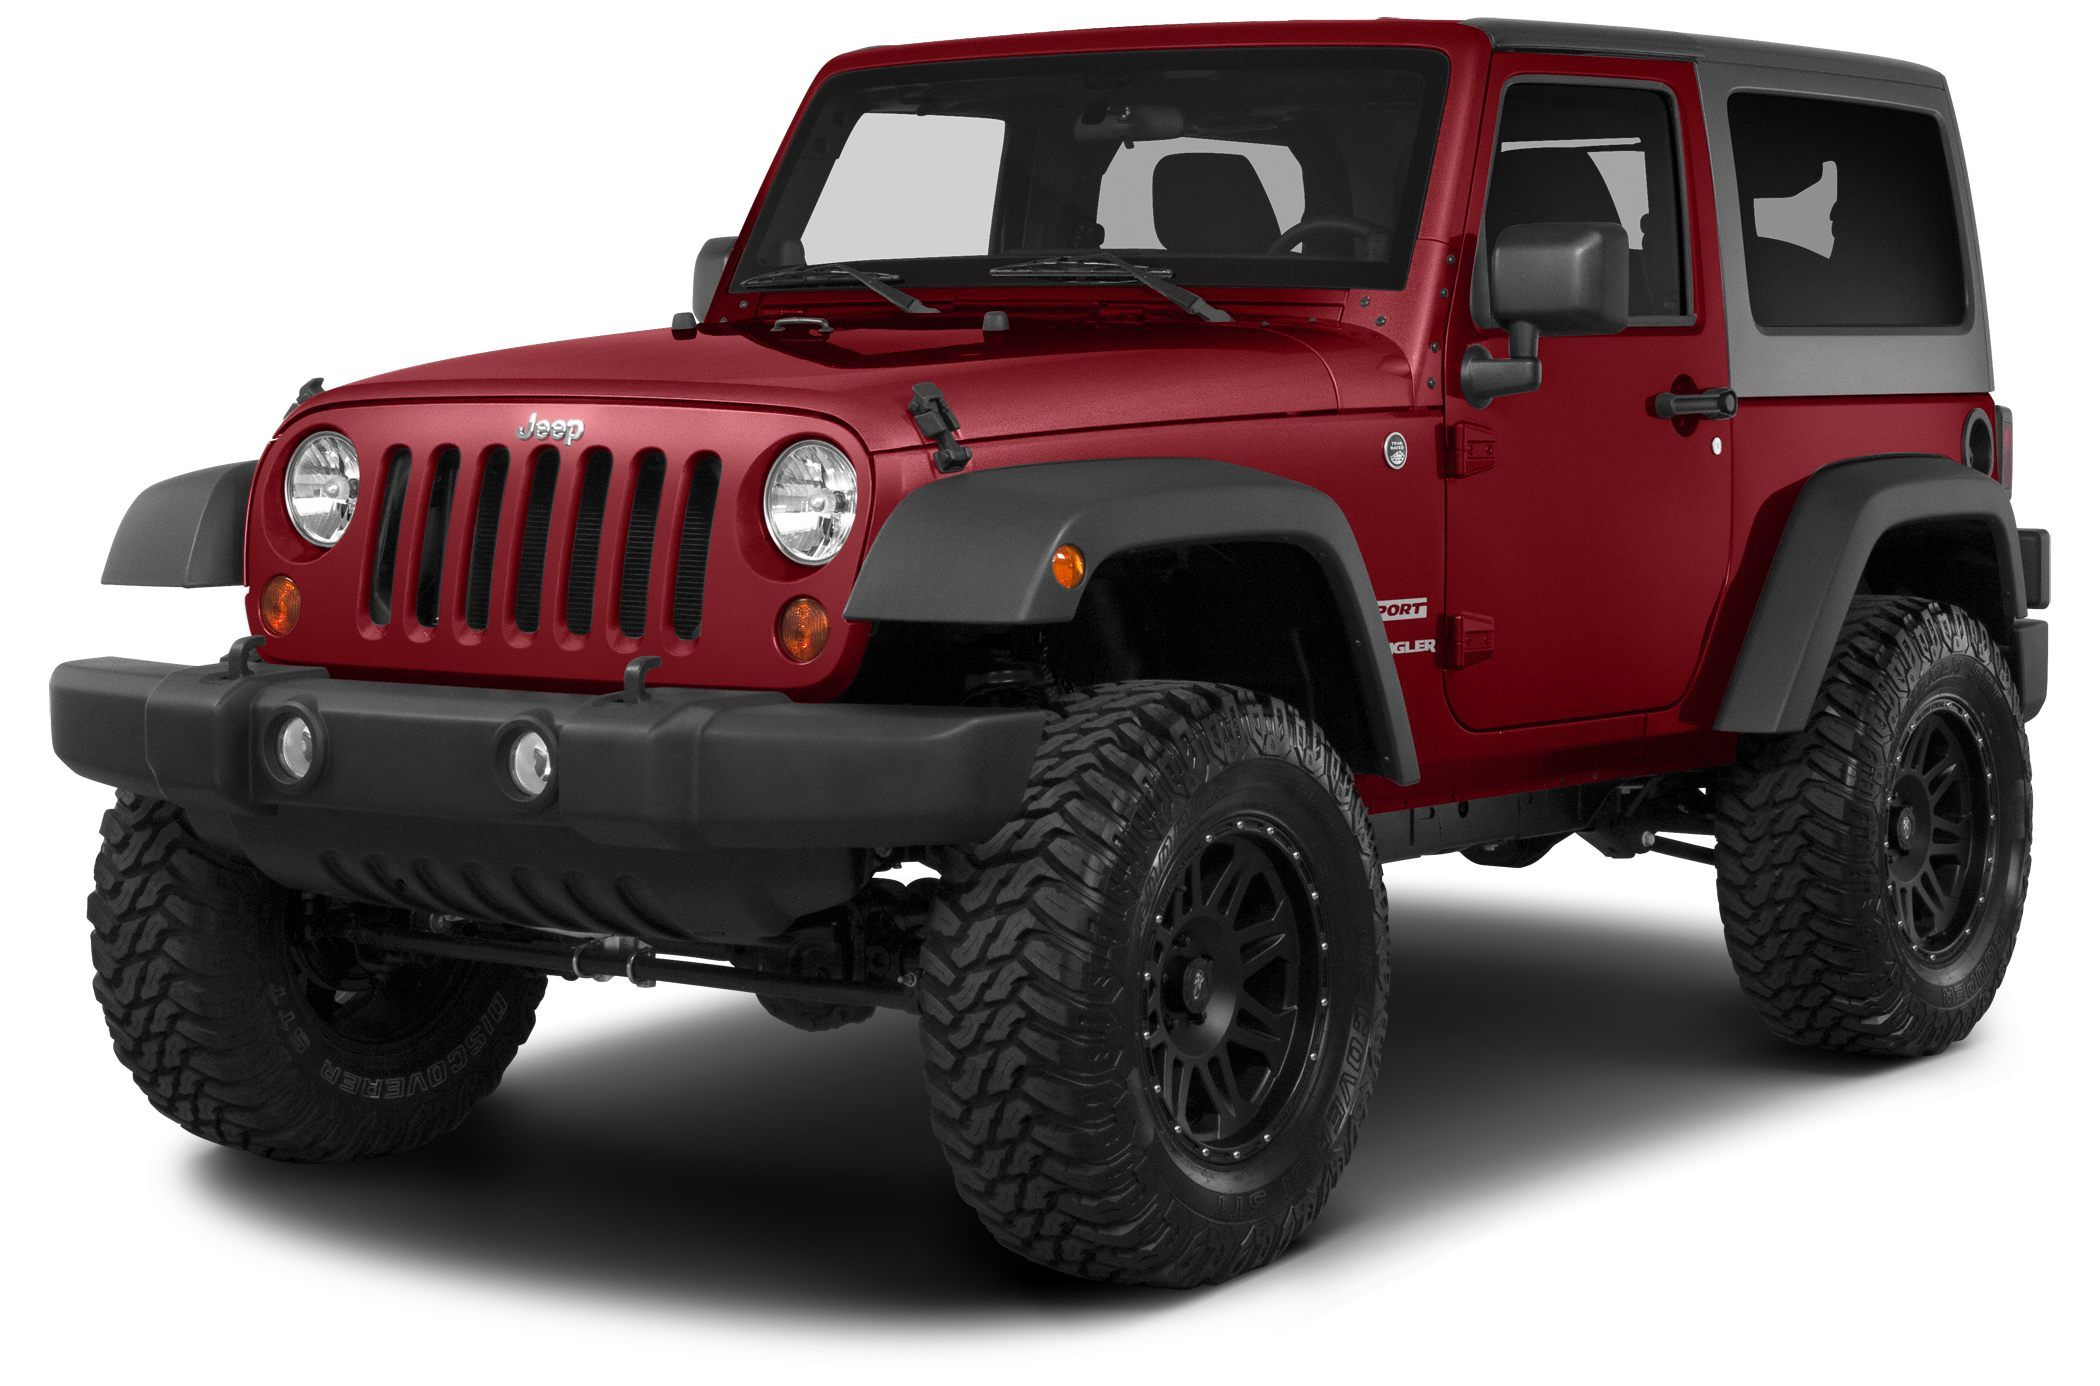 New 2014 Jeep Wrangler Price Photos Reviews Safety Ratings Jeep Wrangler 2013 Jeep Wrangler Jeep Wrangler Sport